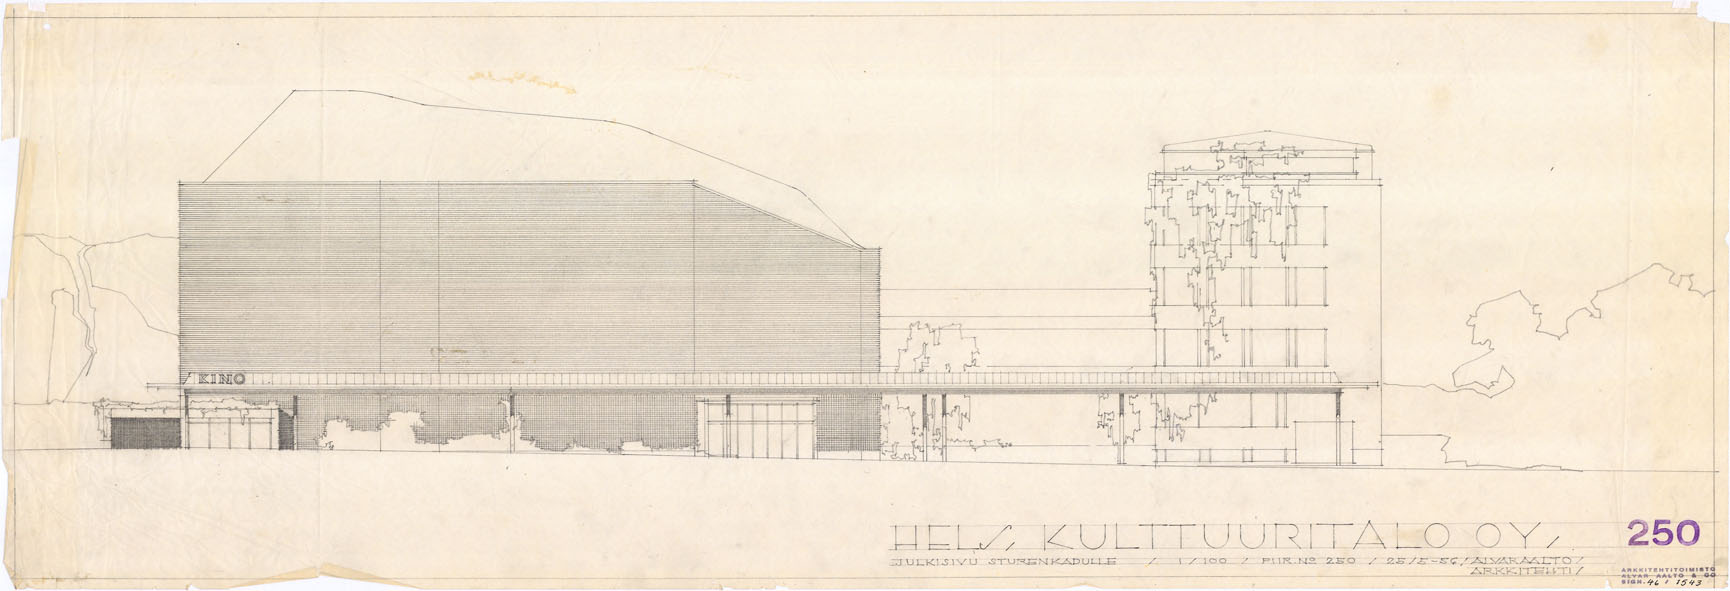 Architectural drawings of the House of Culture